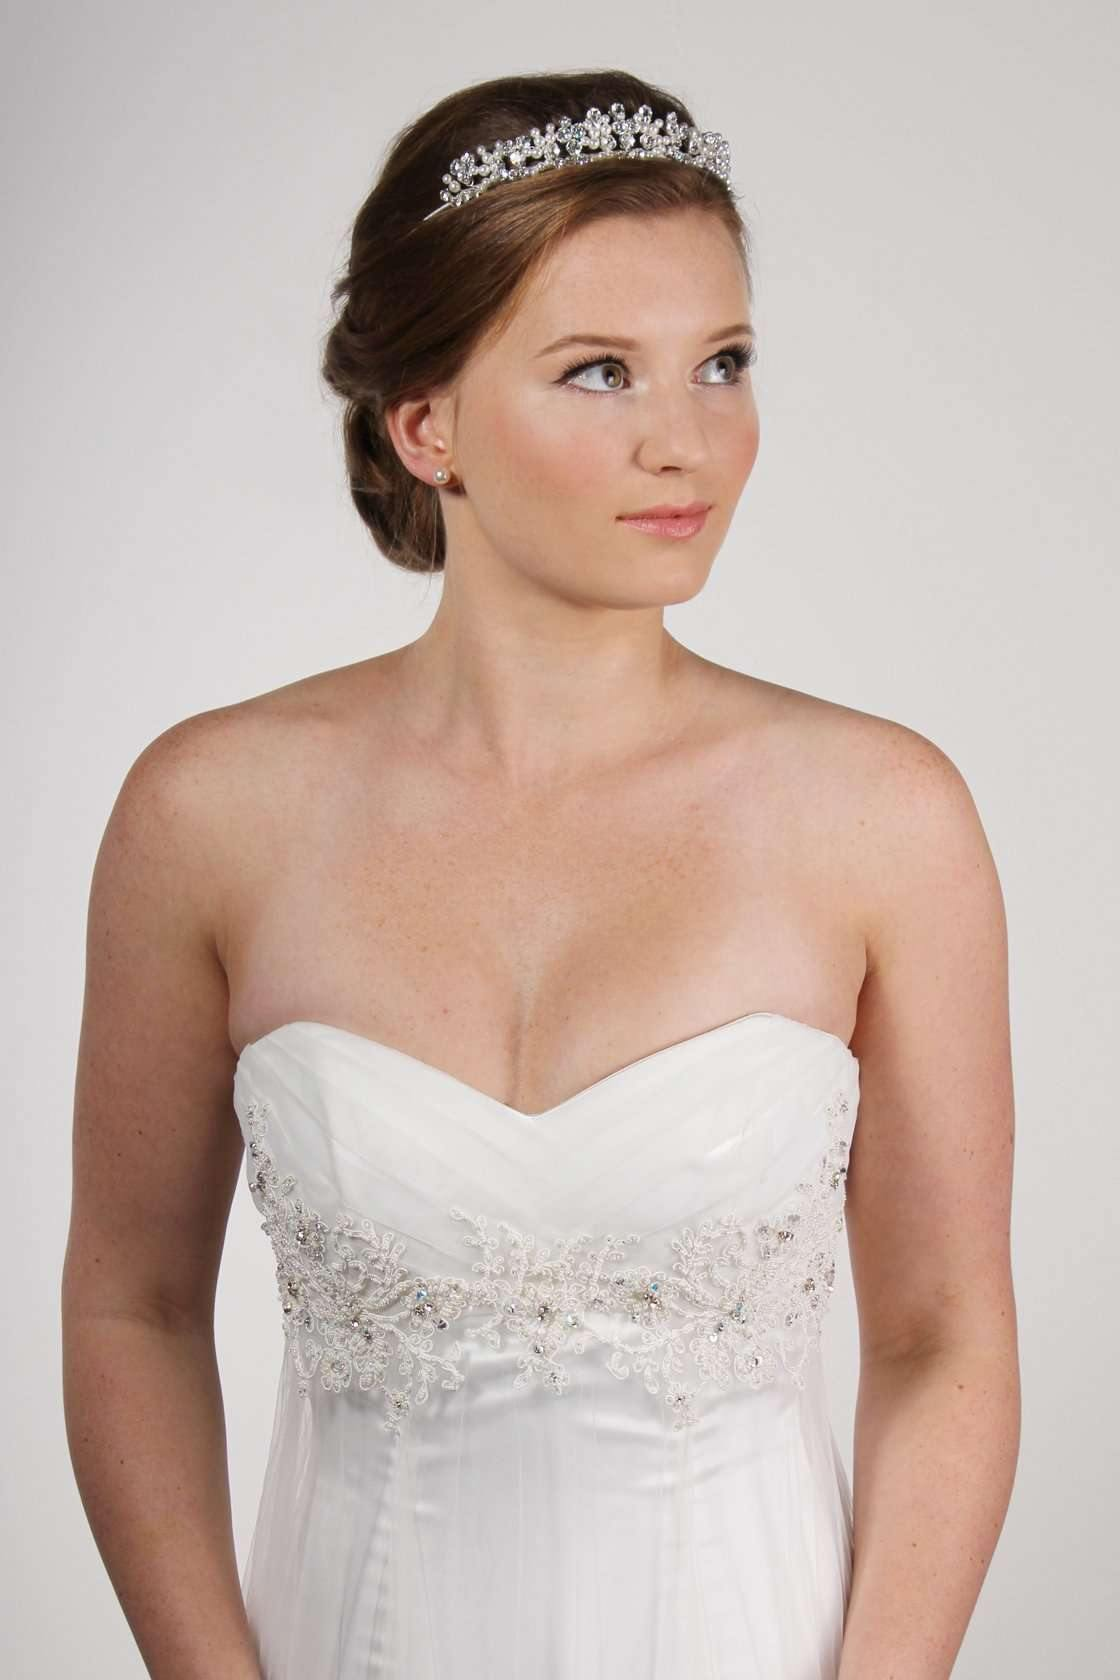 TR1035A SILVER/CREAM - Adore Bridal and Occasion Wear